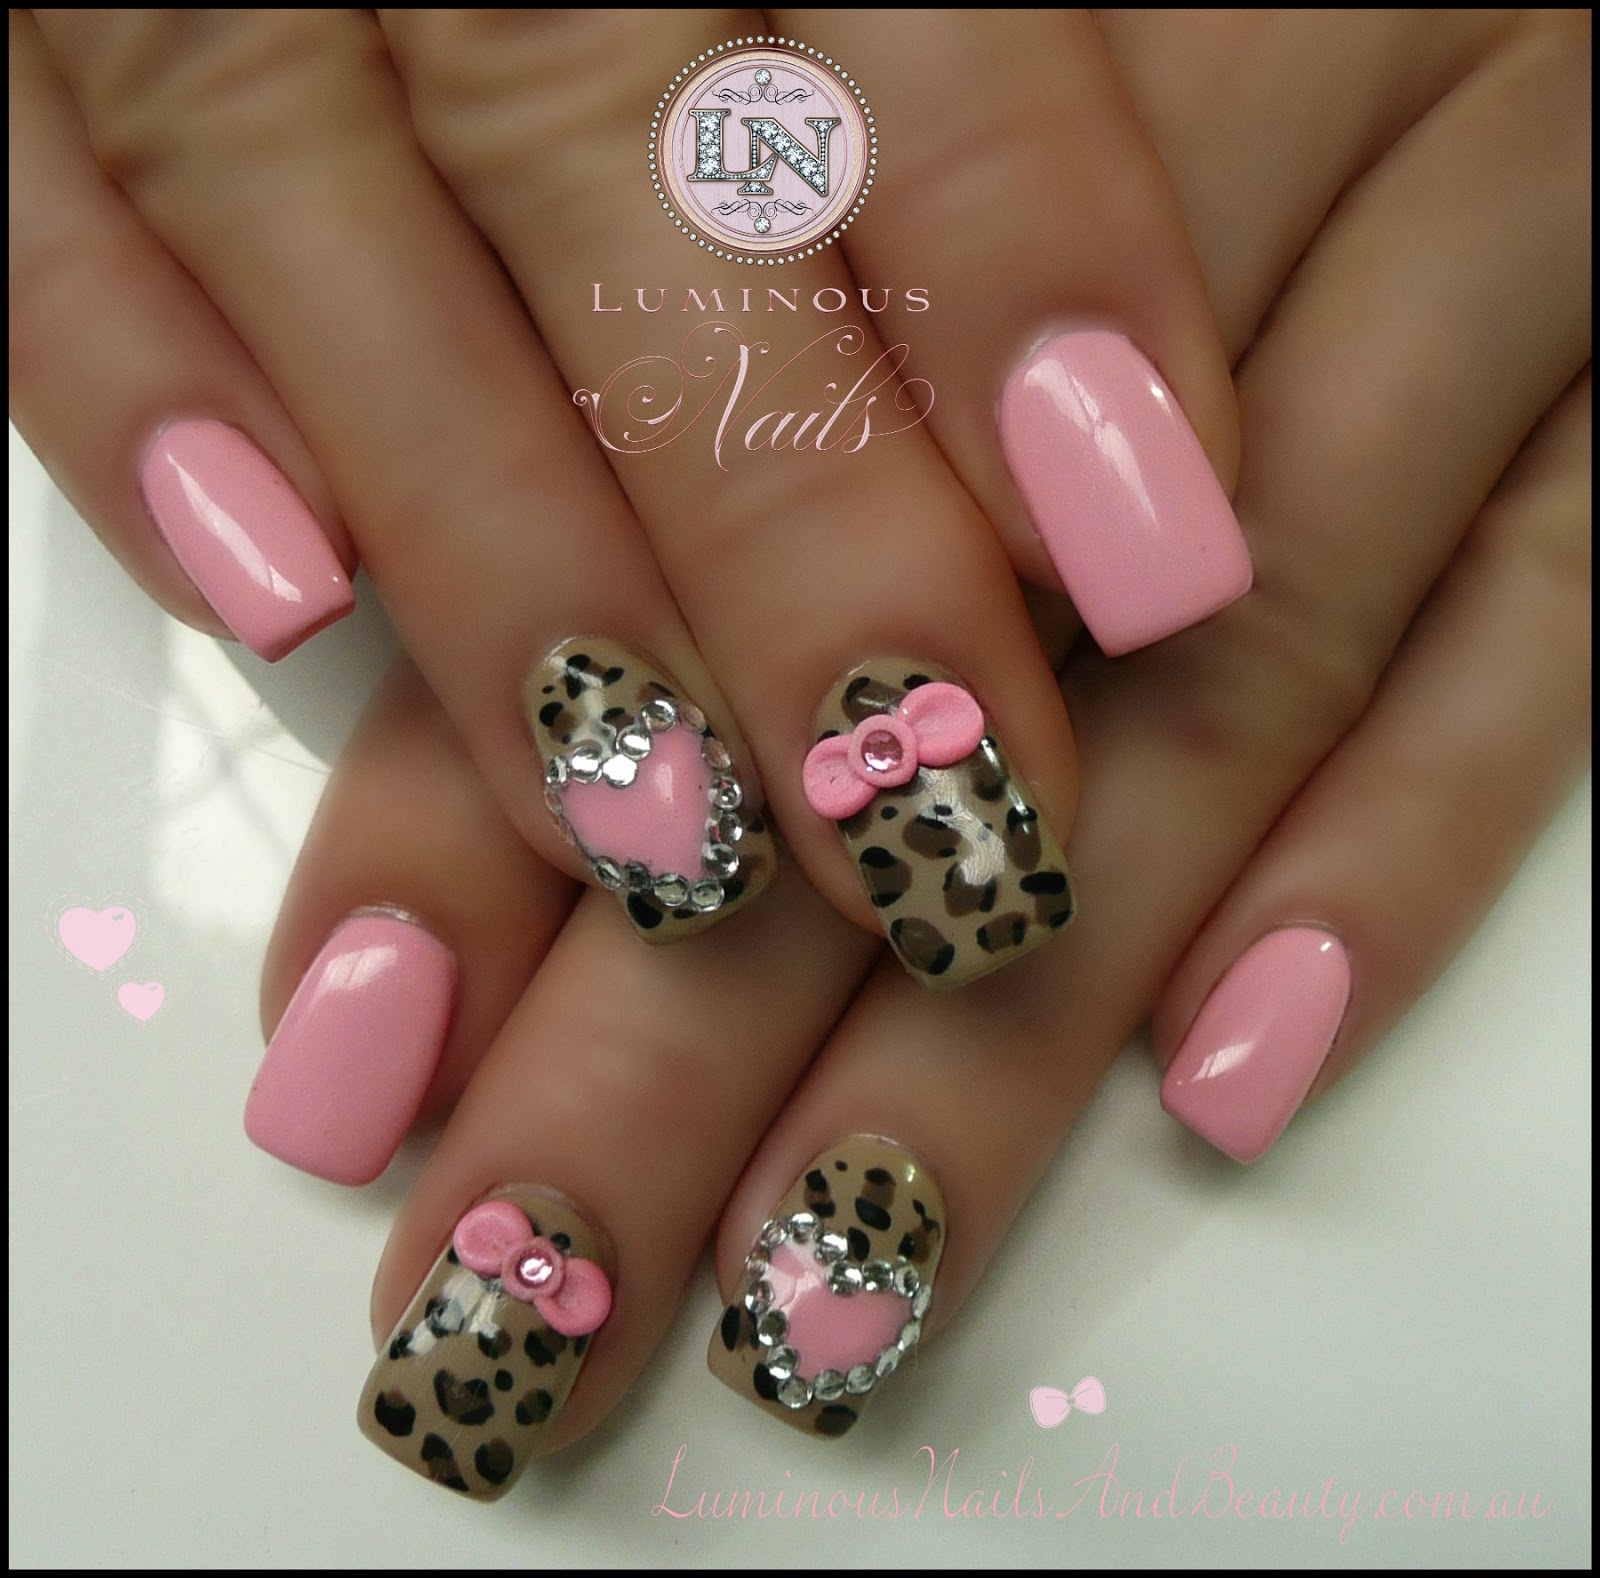 Nails%2C+Gel+Nails%2C+Sculptured+Gel+with+Custom+Pink+Gel%2C+Custom